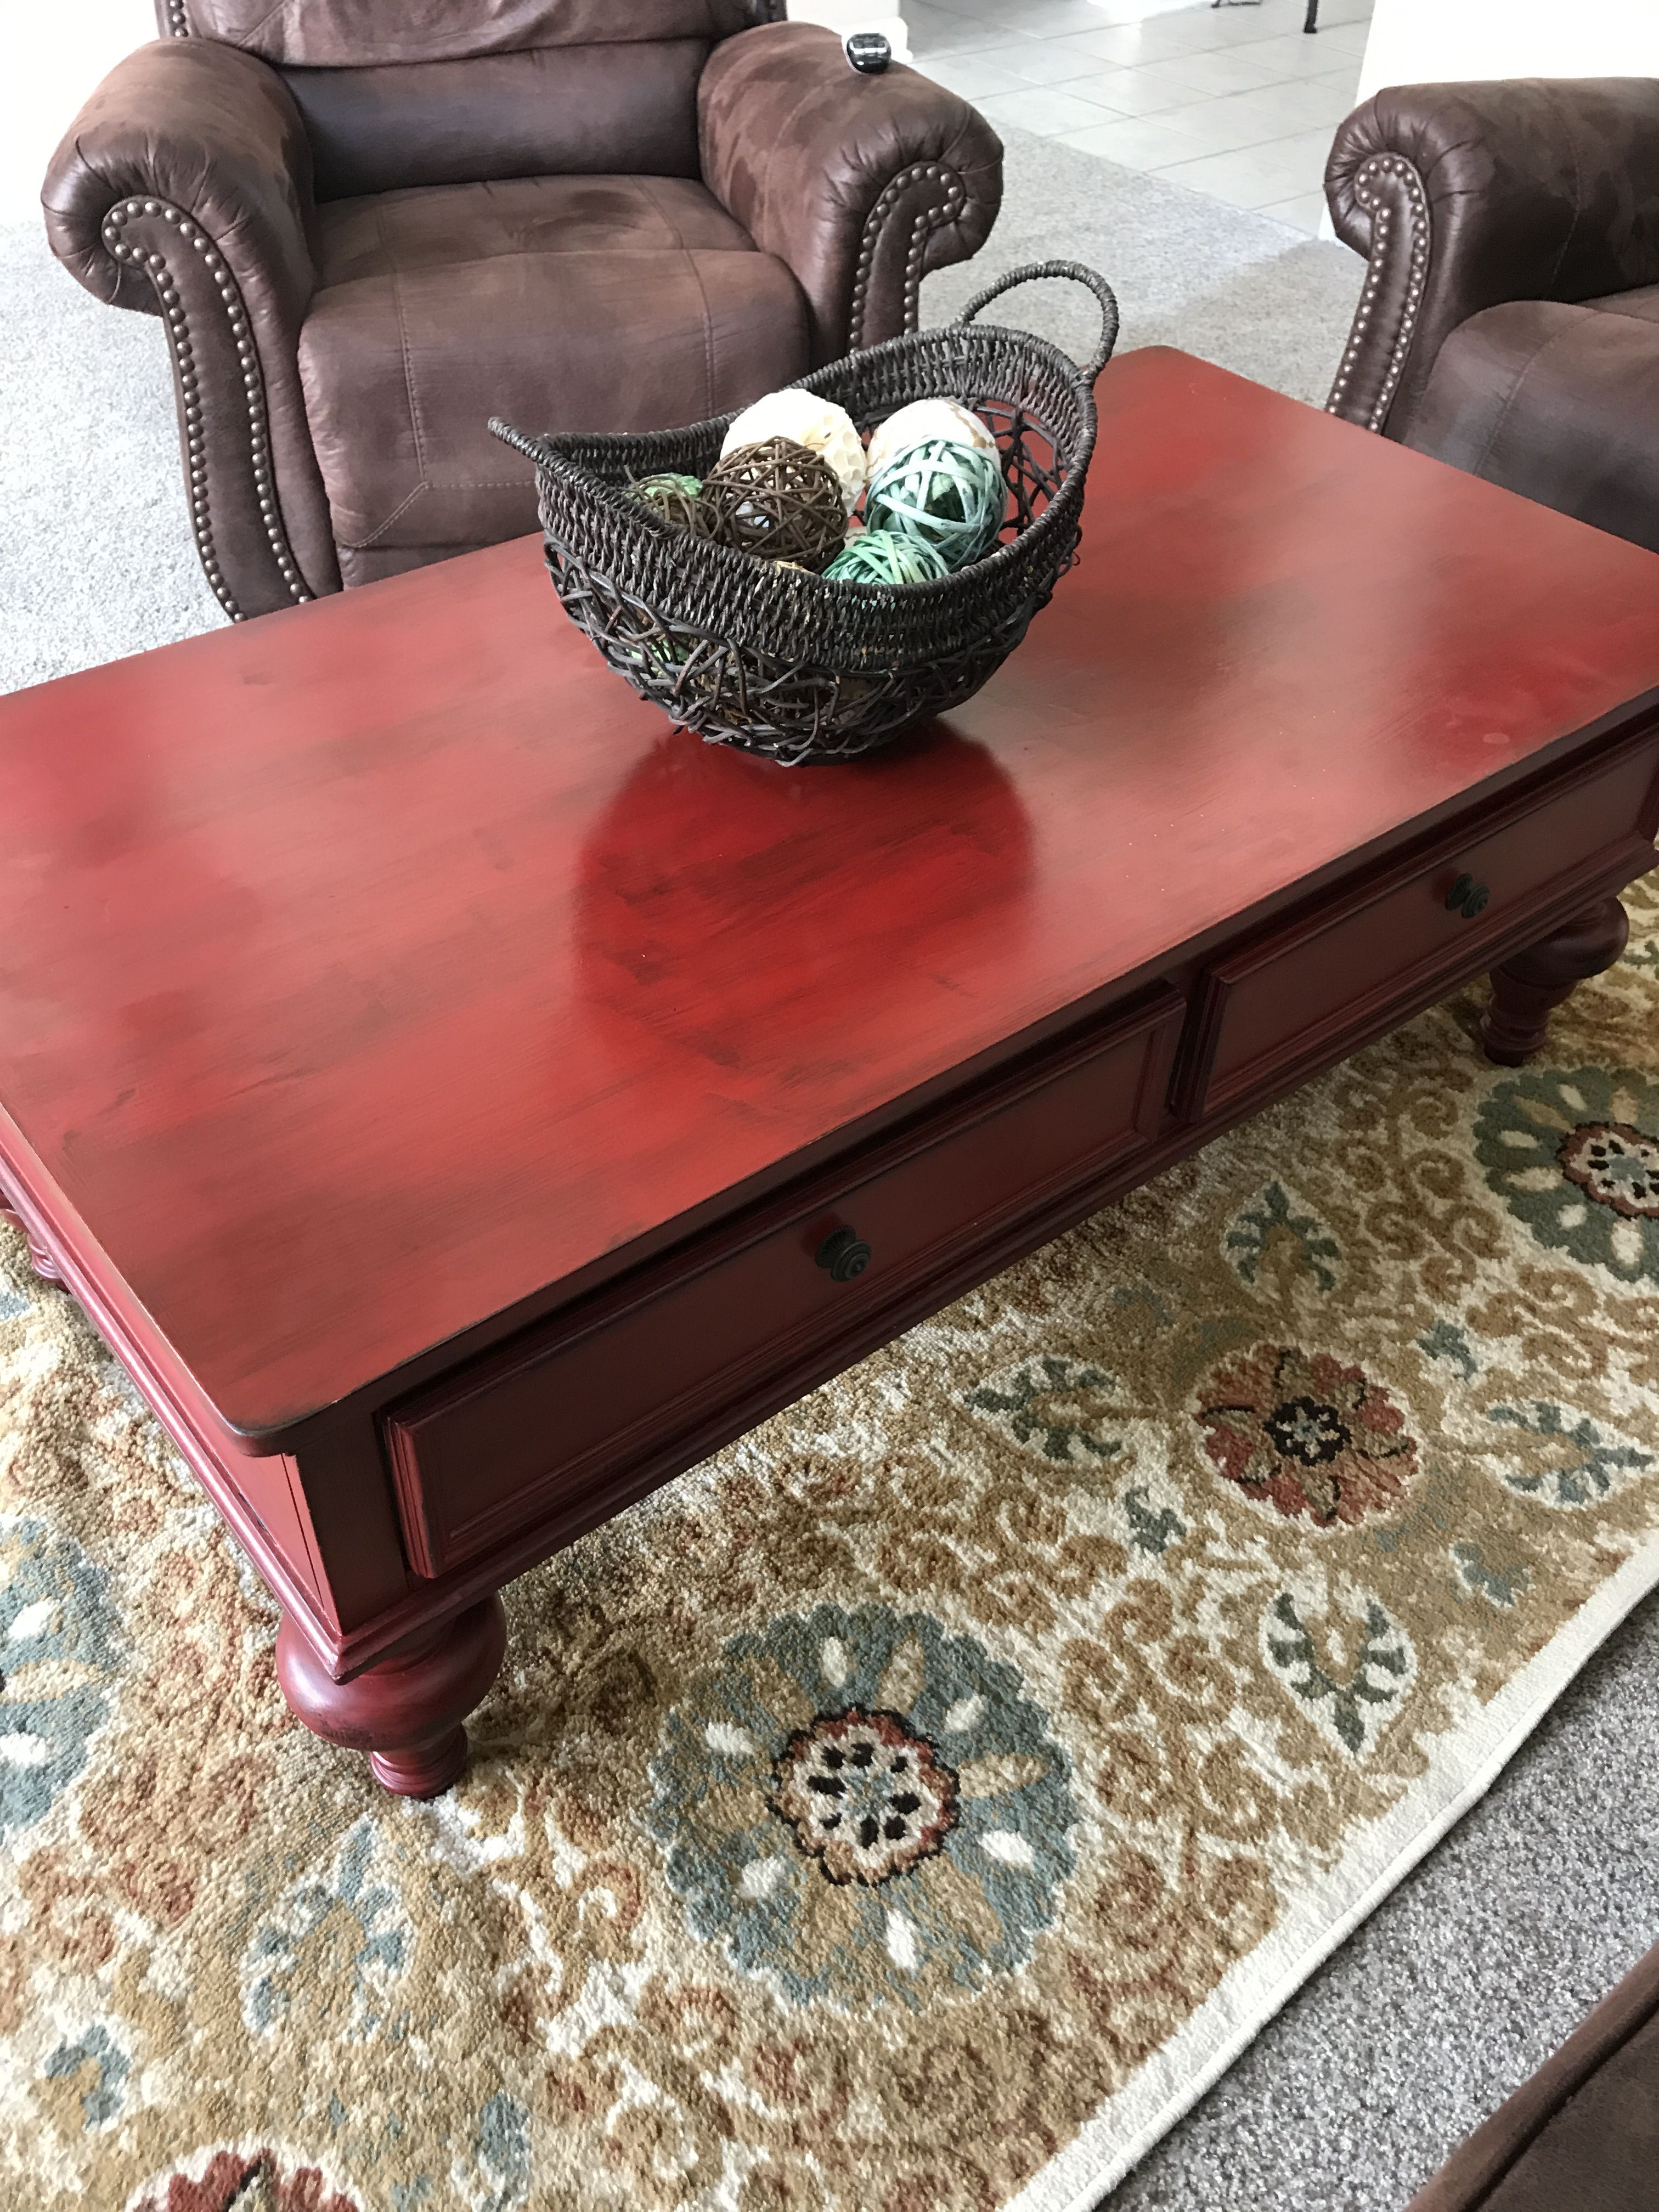 - Went Bold To Refinish My Coffee Table With A Rustic Red Furniture